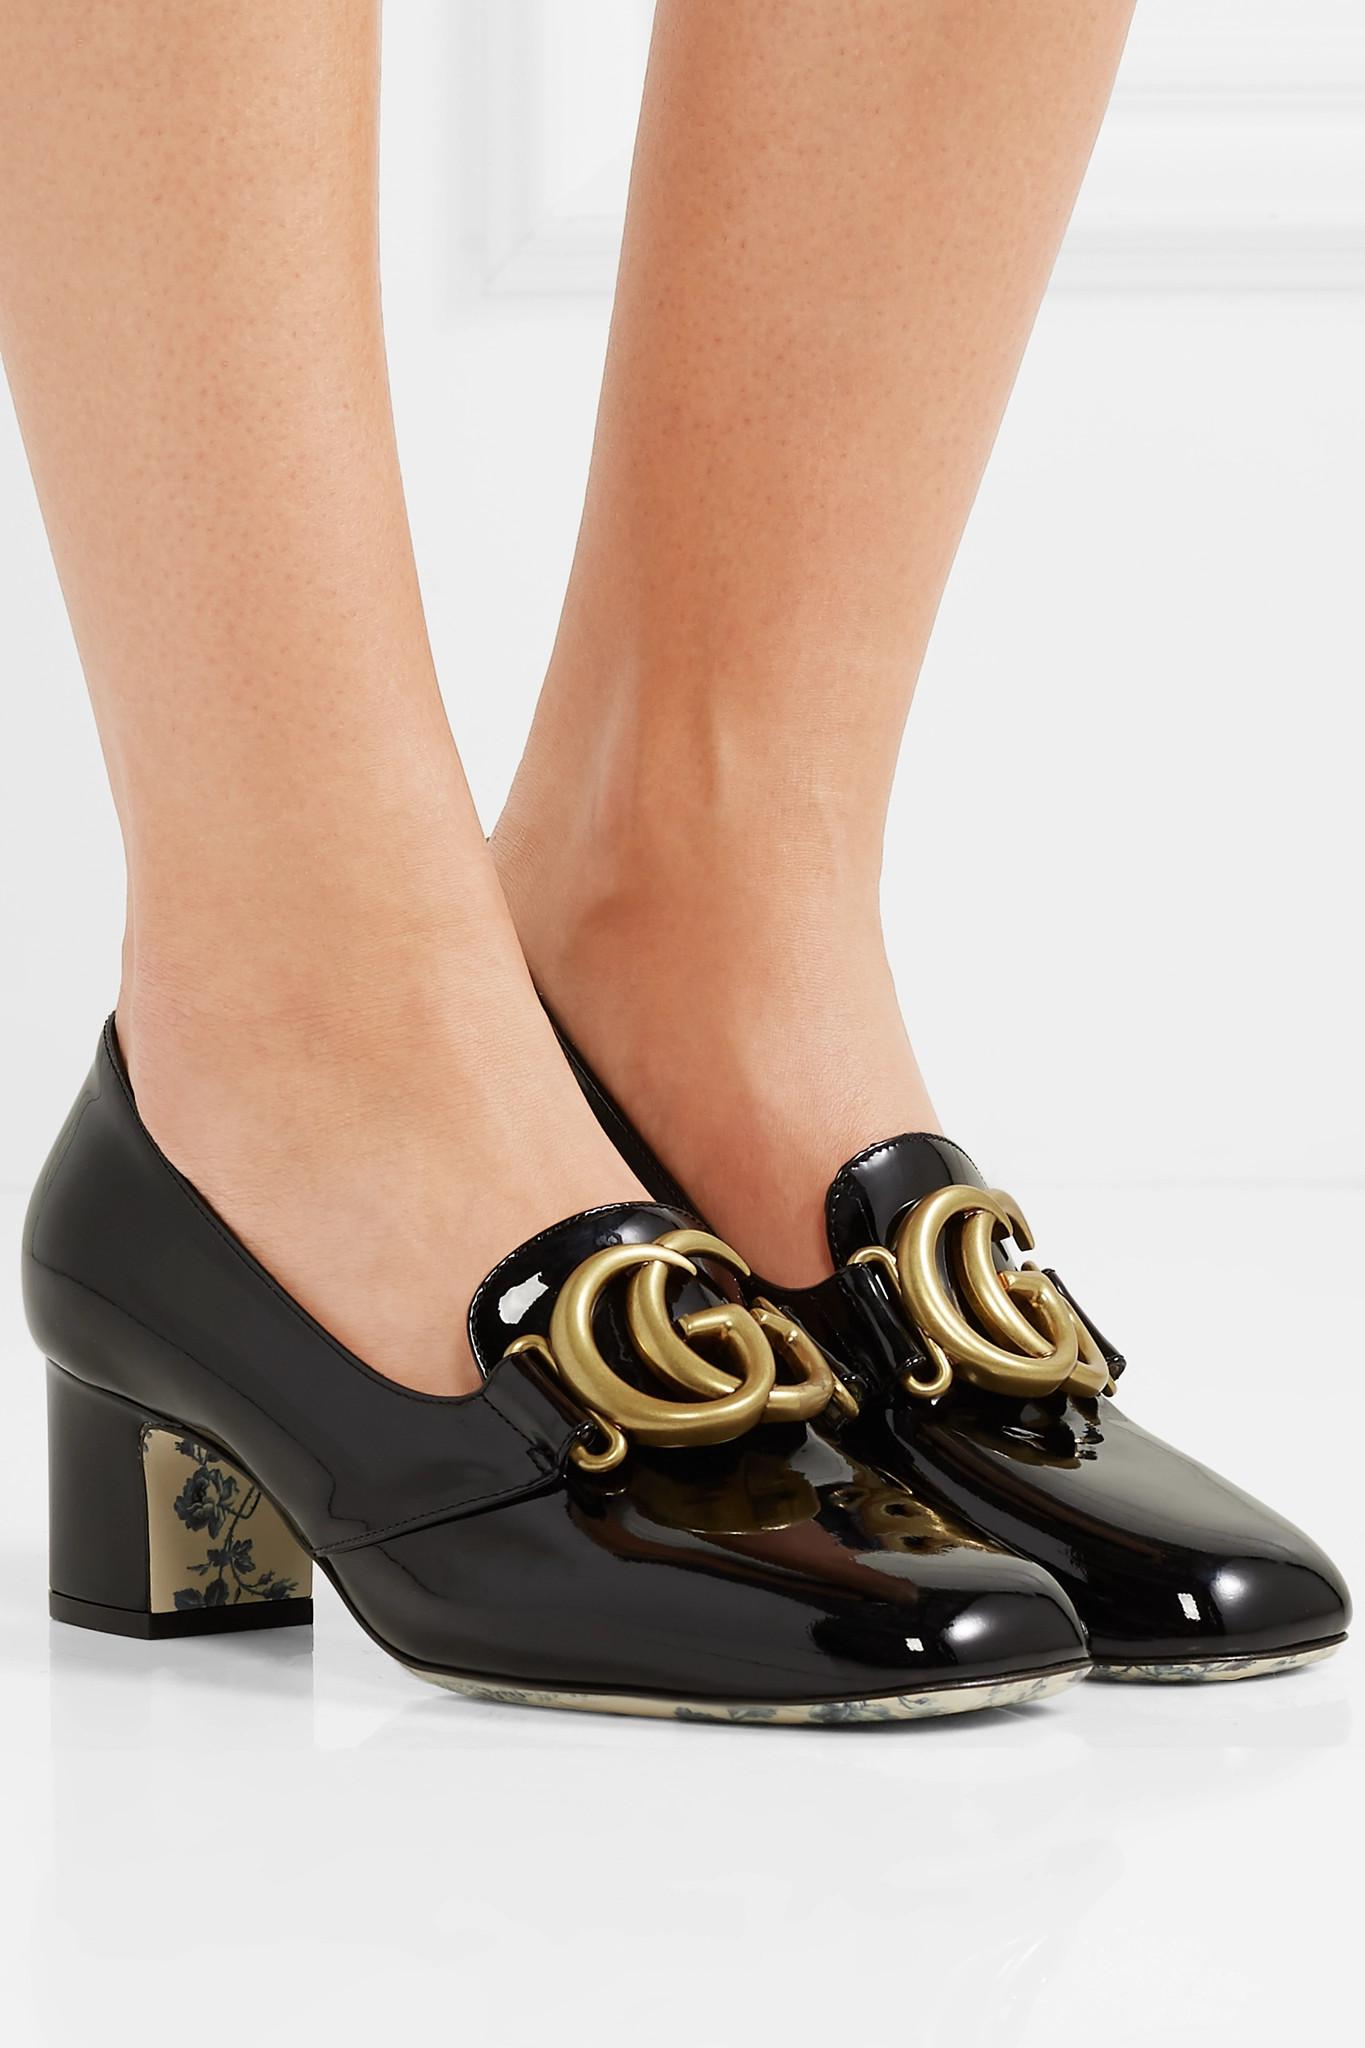 462713781c1 Gucci - Black Victoire Logo-embellished Patent-leather Pumps - Lyst. View  fullscreen